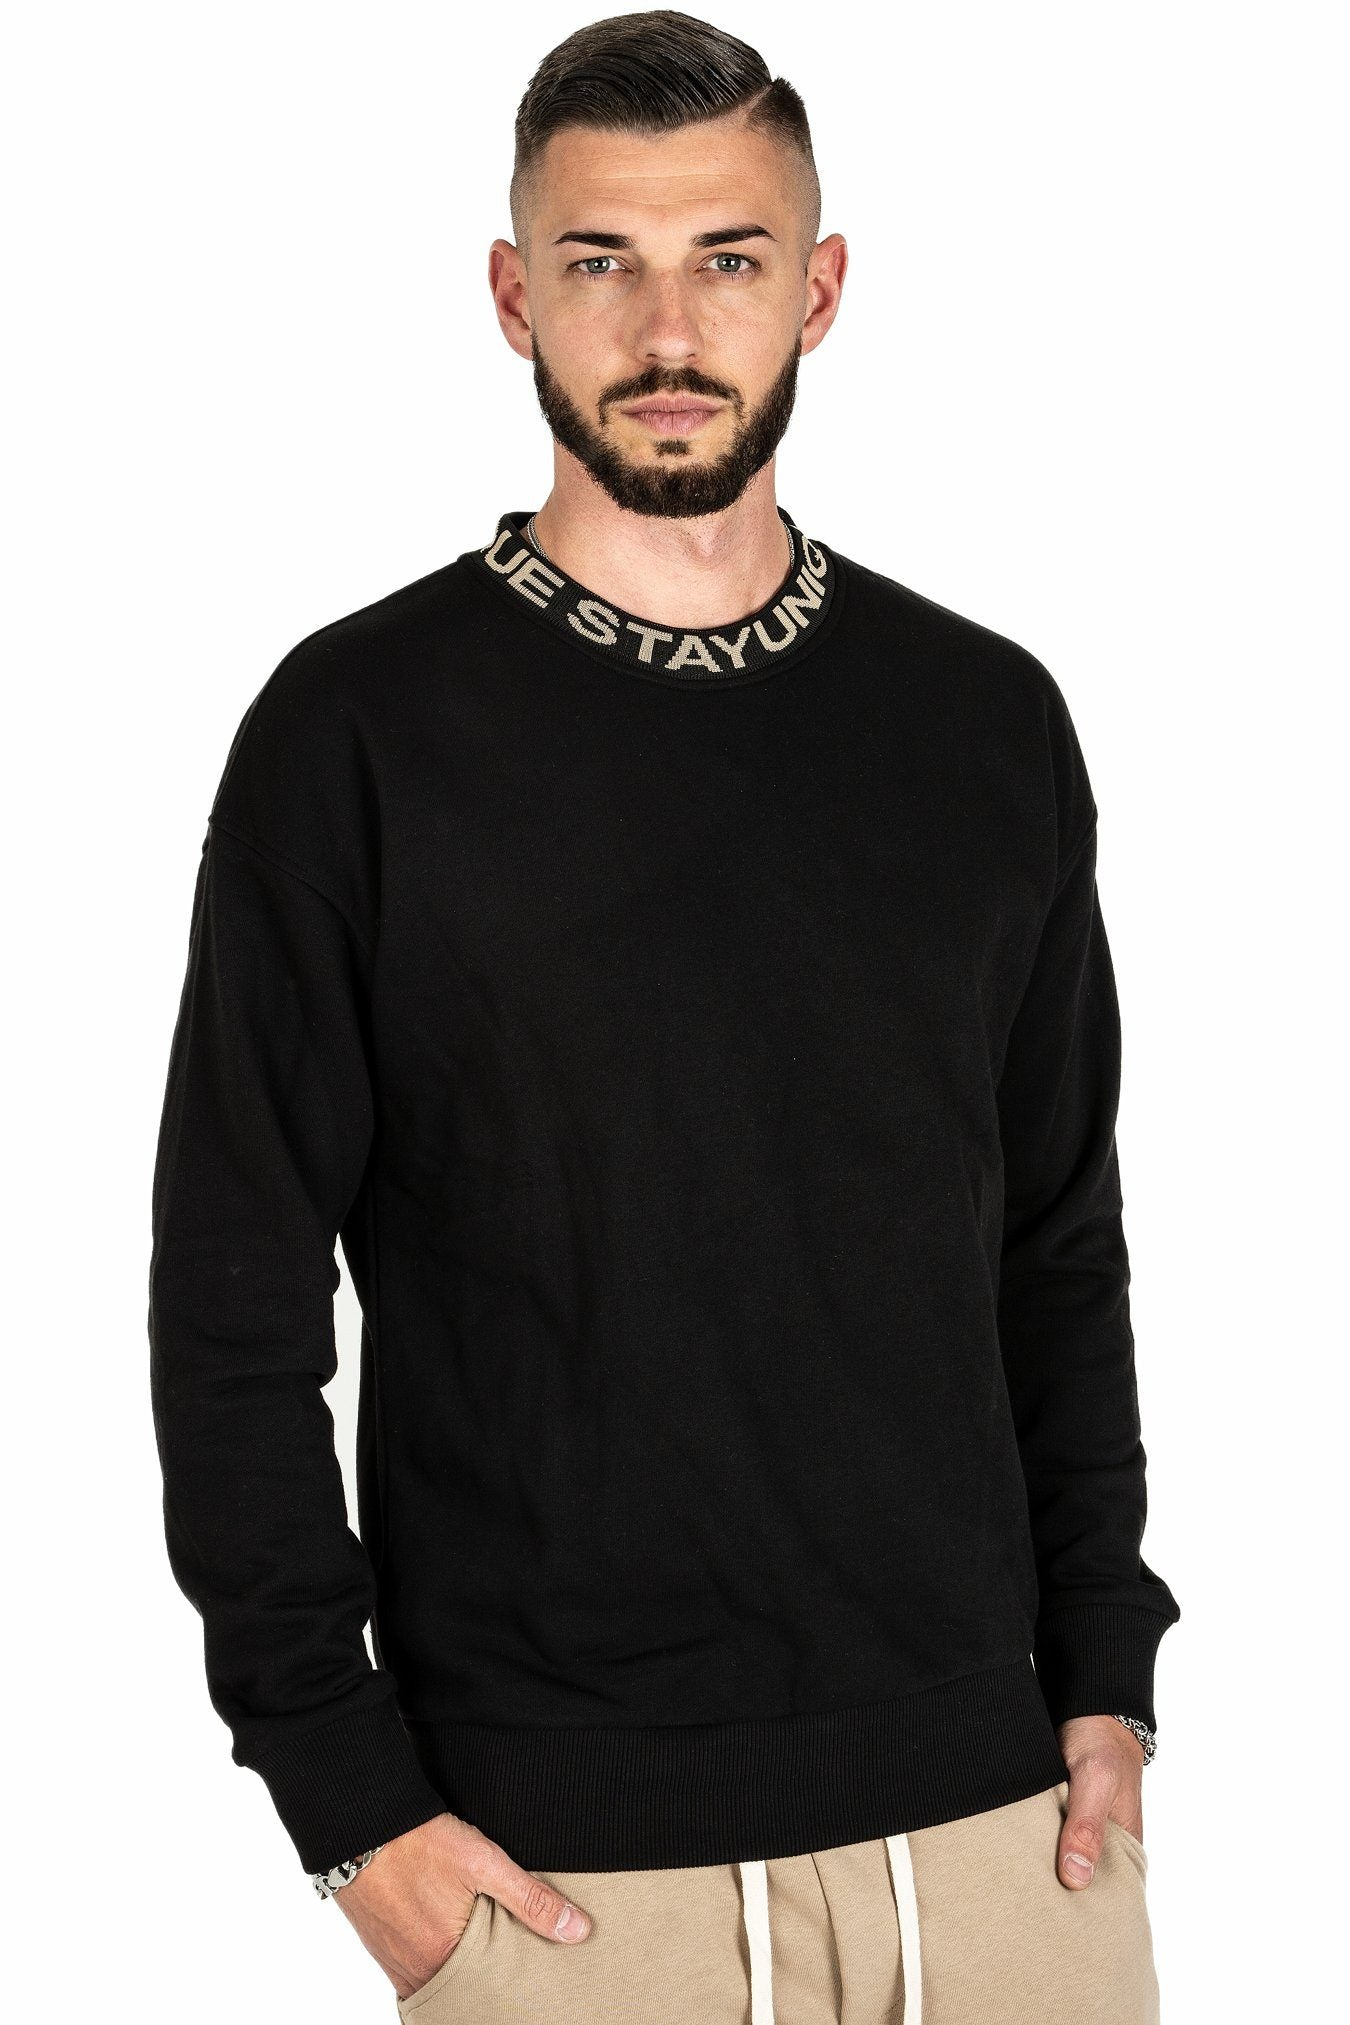 Fio Oversized Crewneck Black - PEGADOR - Dominate the Hype